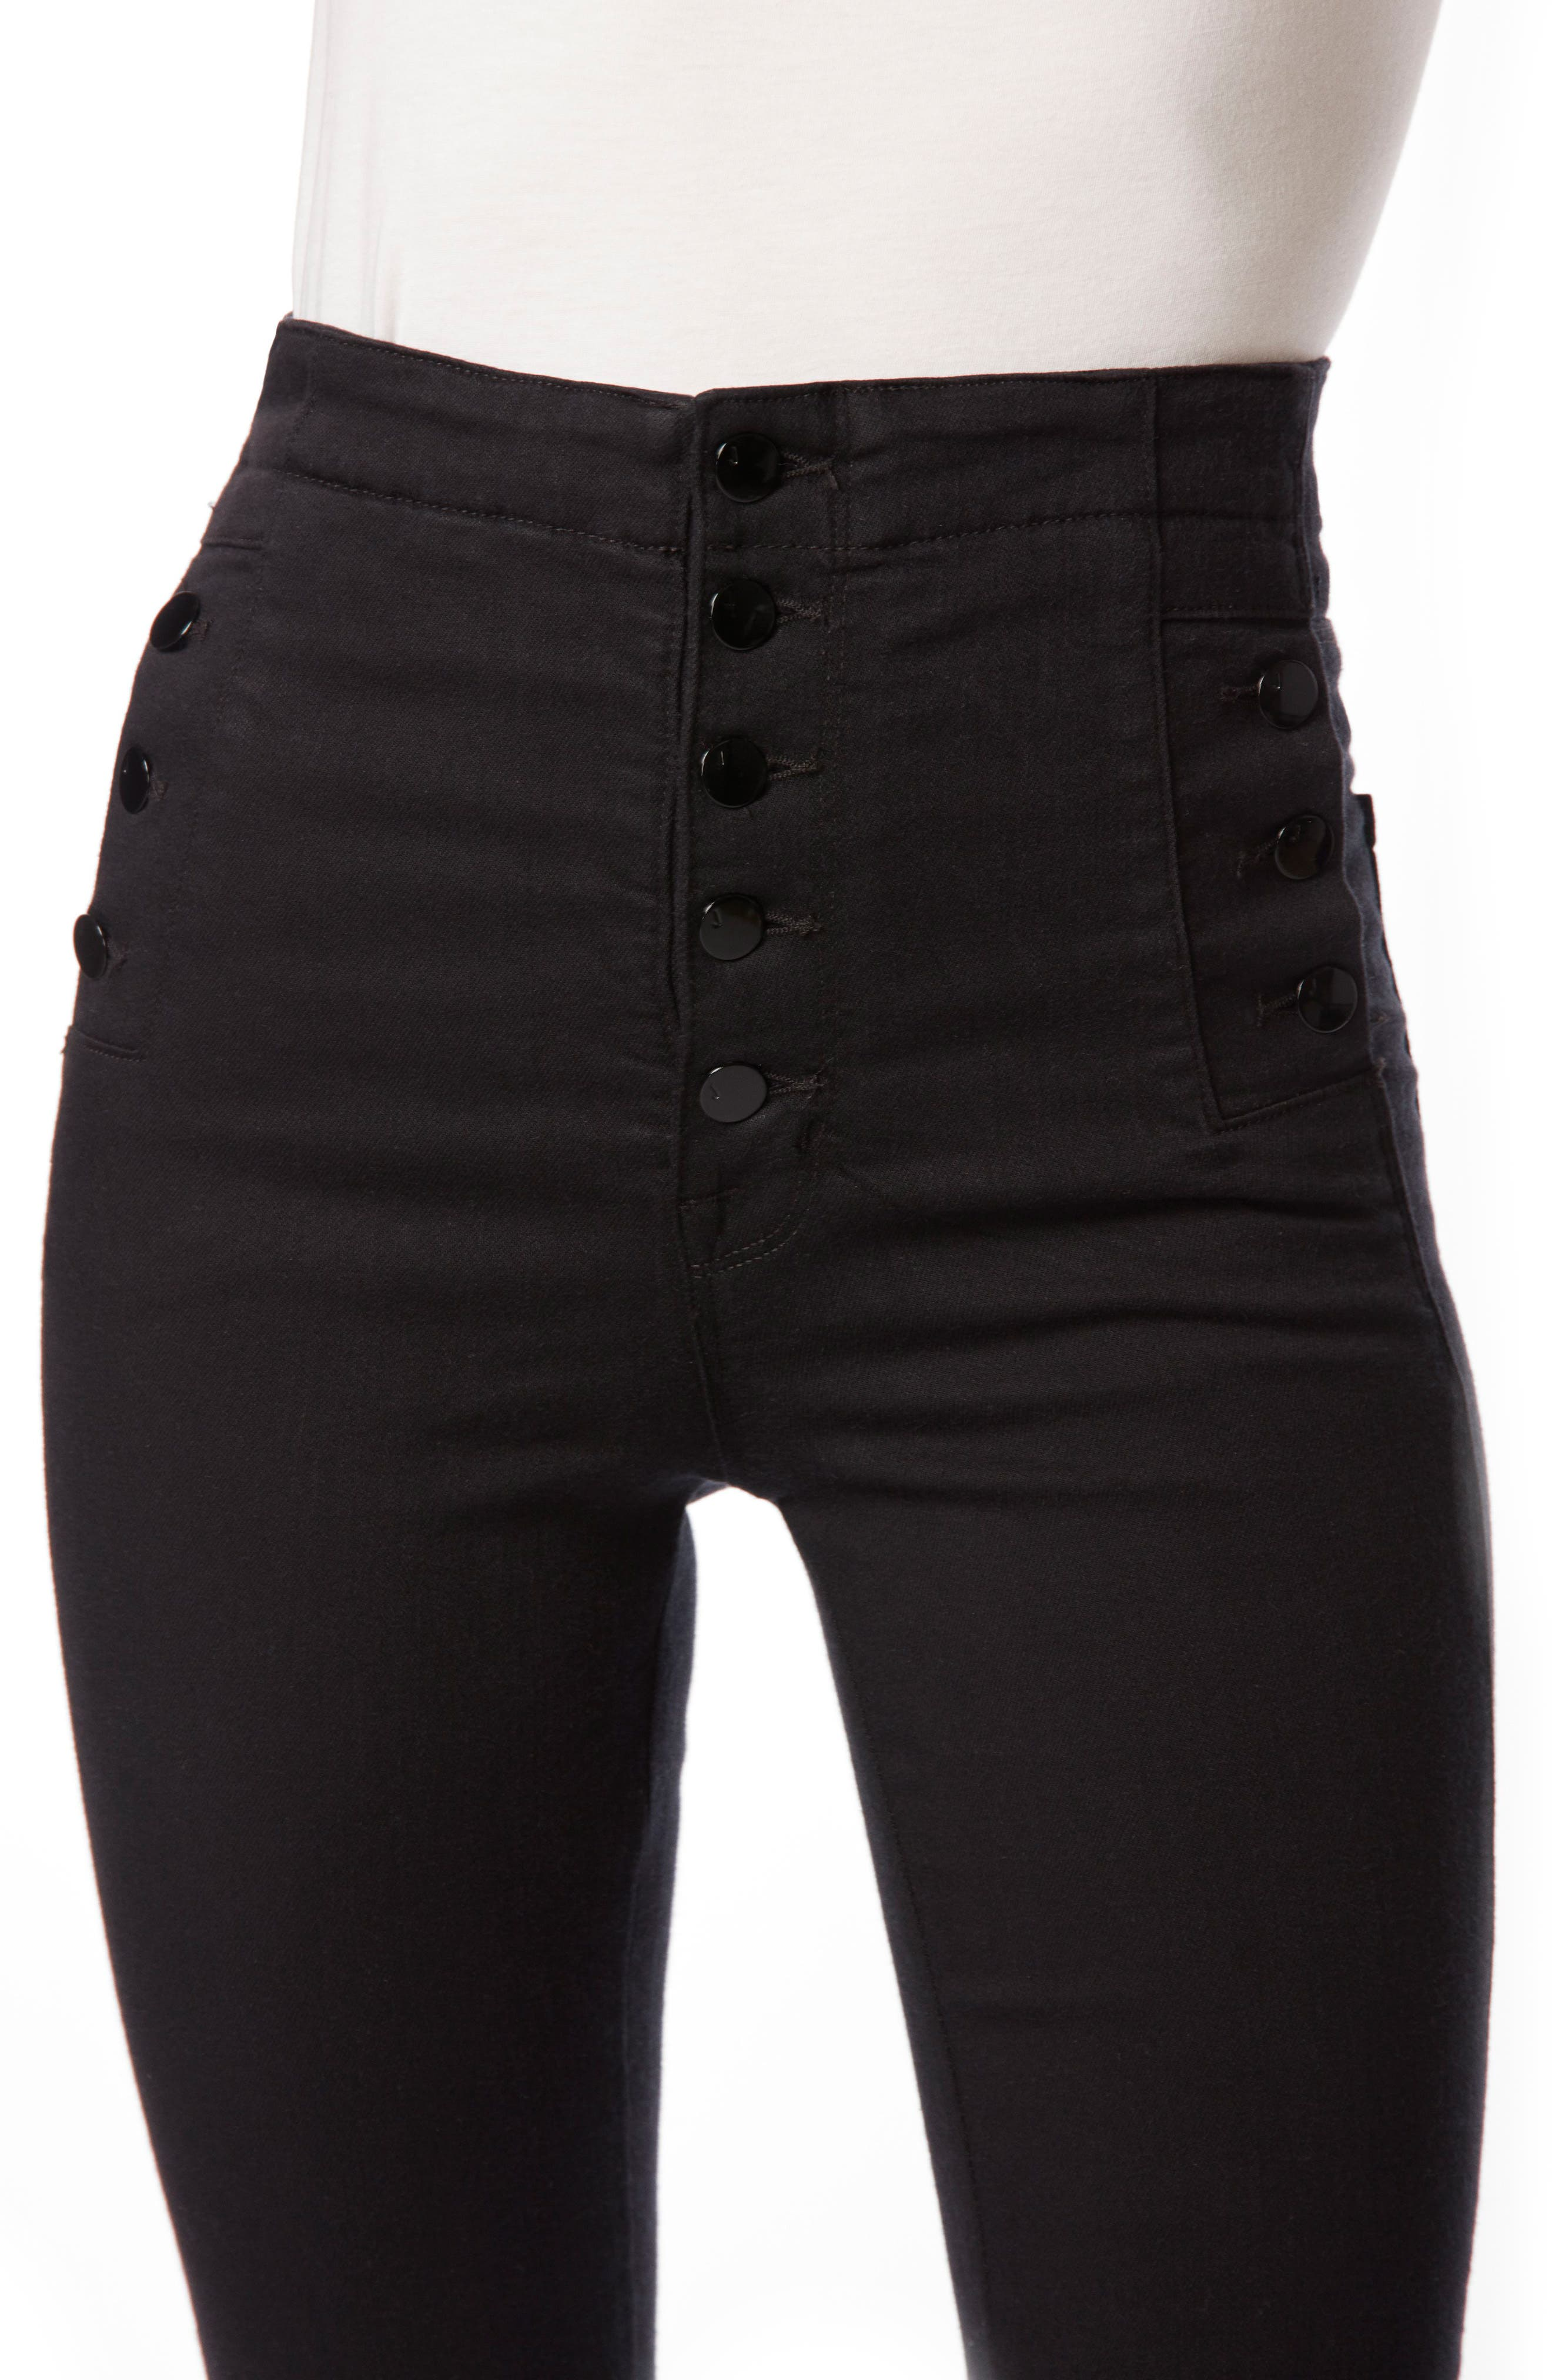 Natasha Sky High High Waist Super Skinny Jeans,                             Alternate thumbnail 6, color,                             Seriously Black